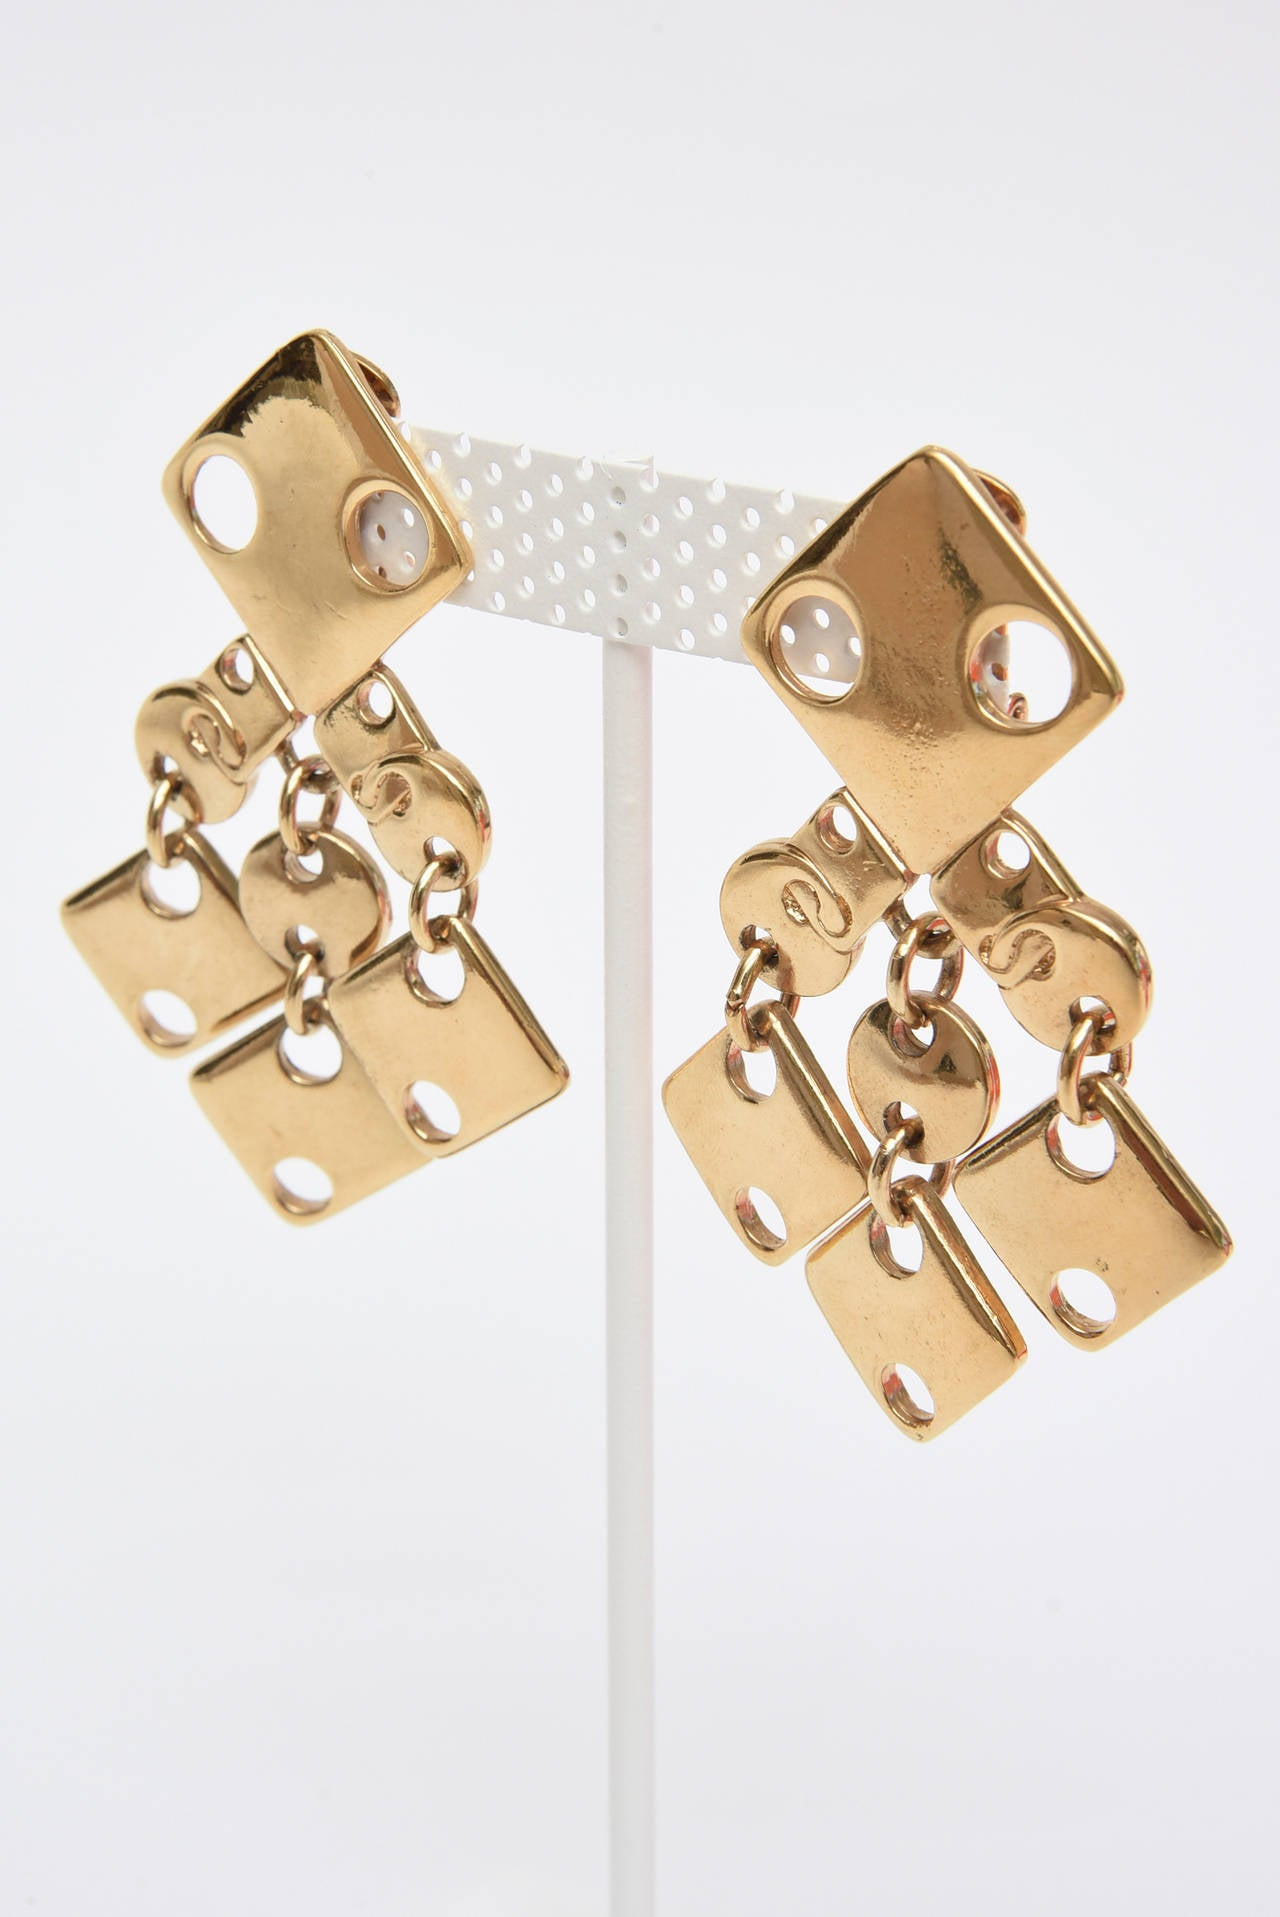 Paco Rabanne Signed Geometric Gold Plated Modernist Brass Earrings 60's In Good Condition For Sale In North Miami, FL